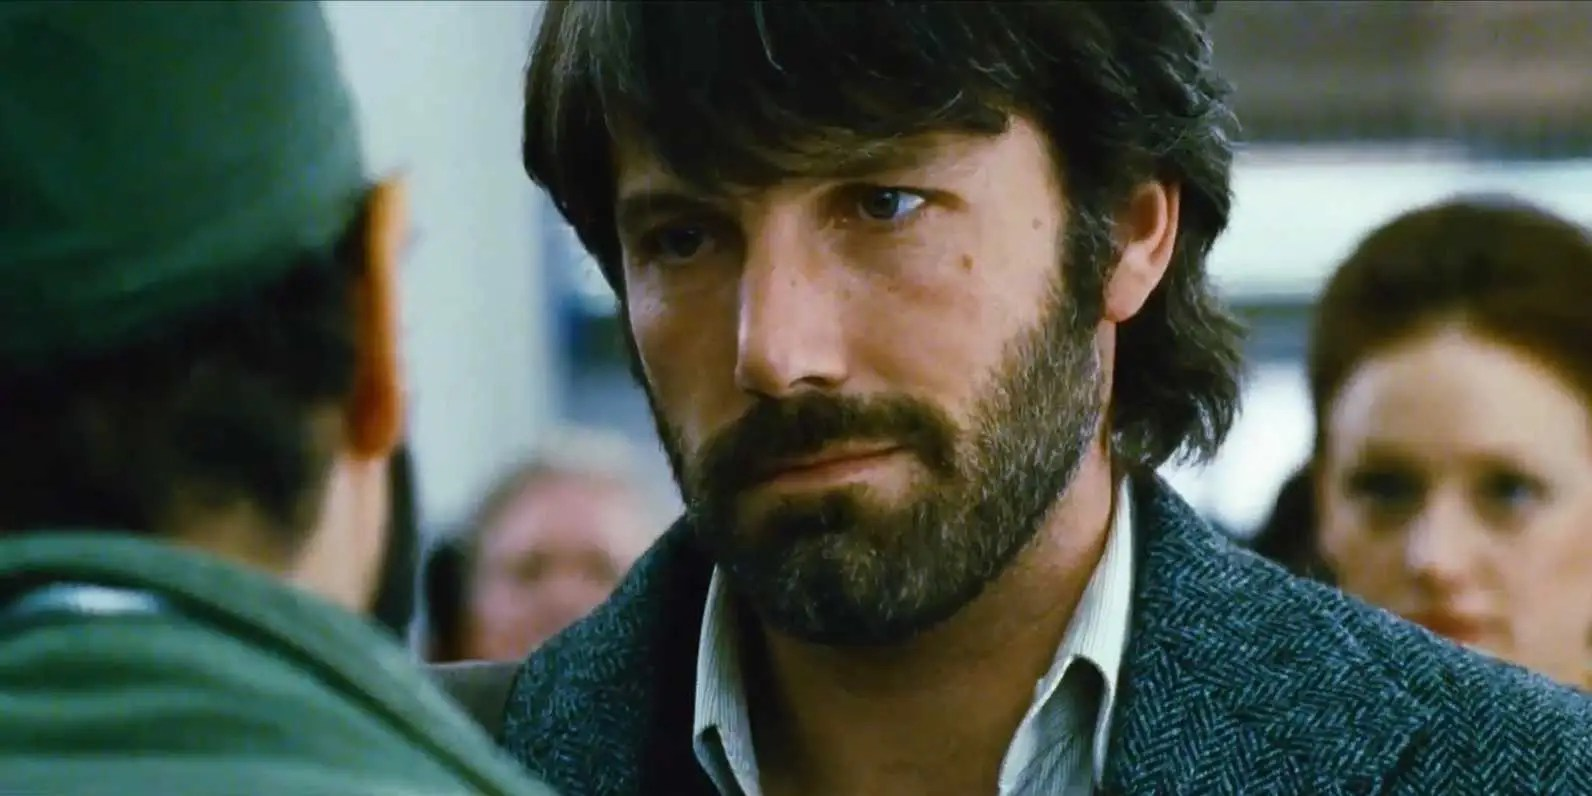 """Argo"" (2012): On an undercover mission, a CIA agent (Ben Affleck) poses as a movie producer in order to rescue six Americans during the U.S. hostage crisis in Iran in 1980."